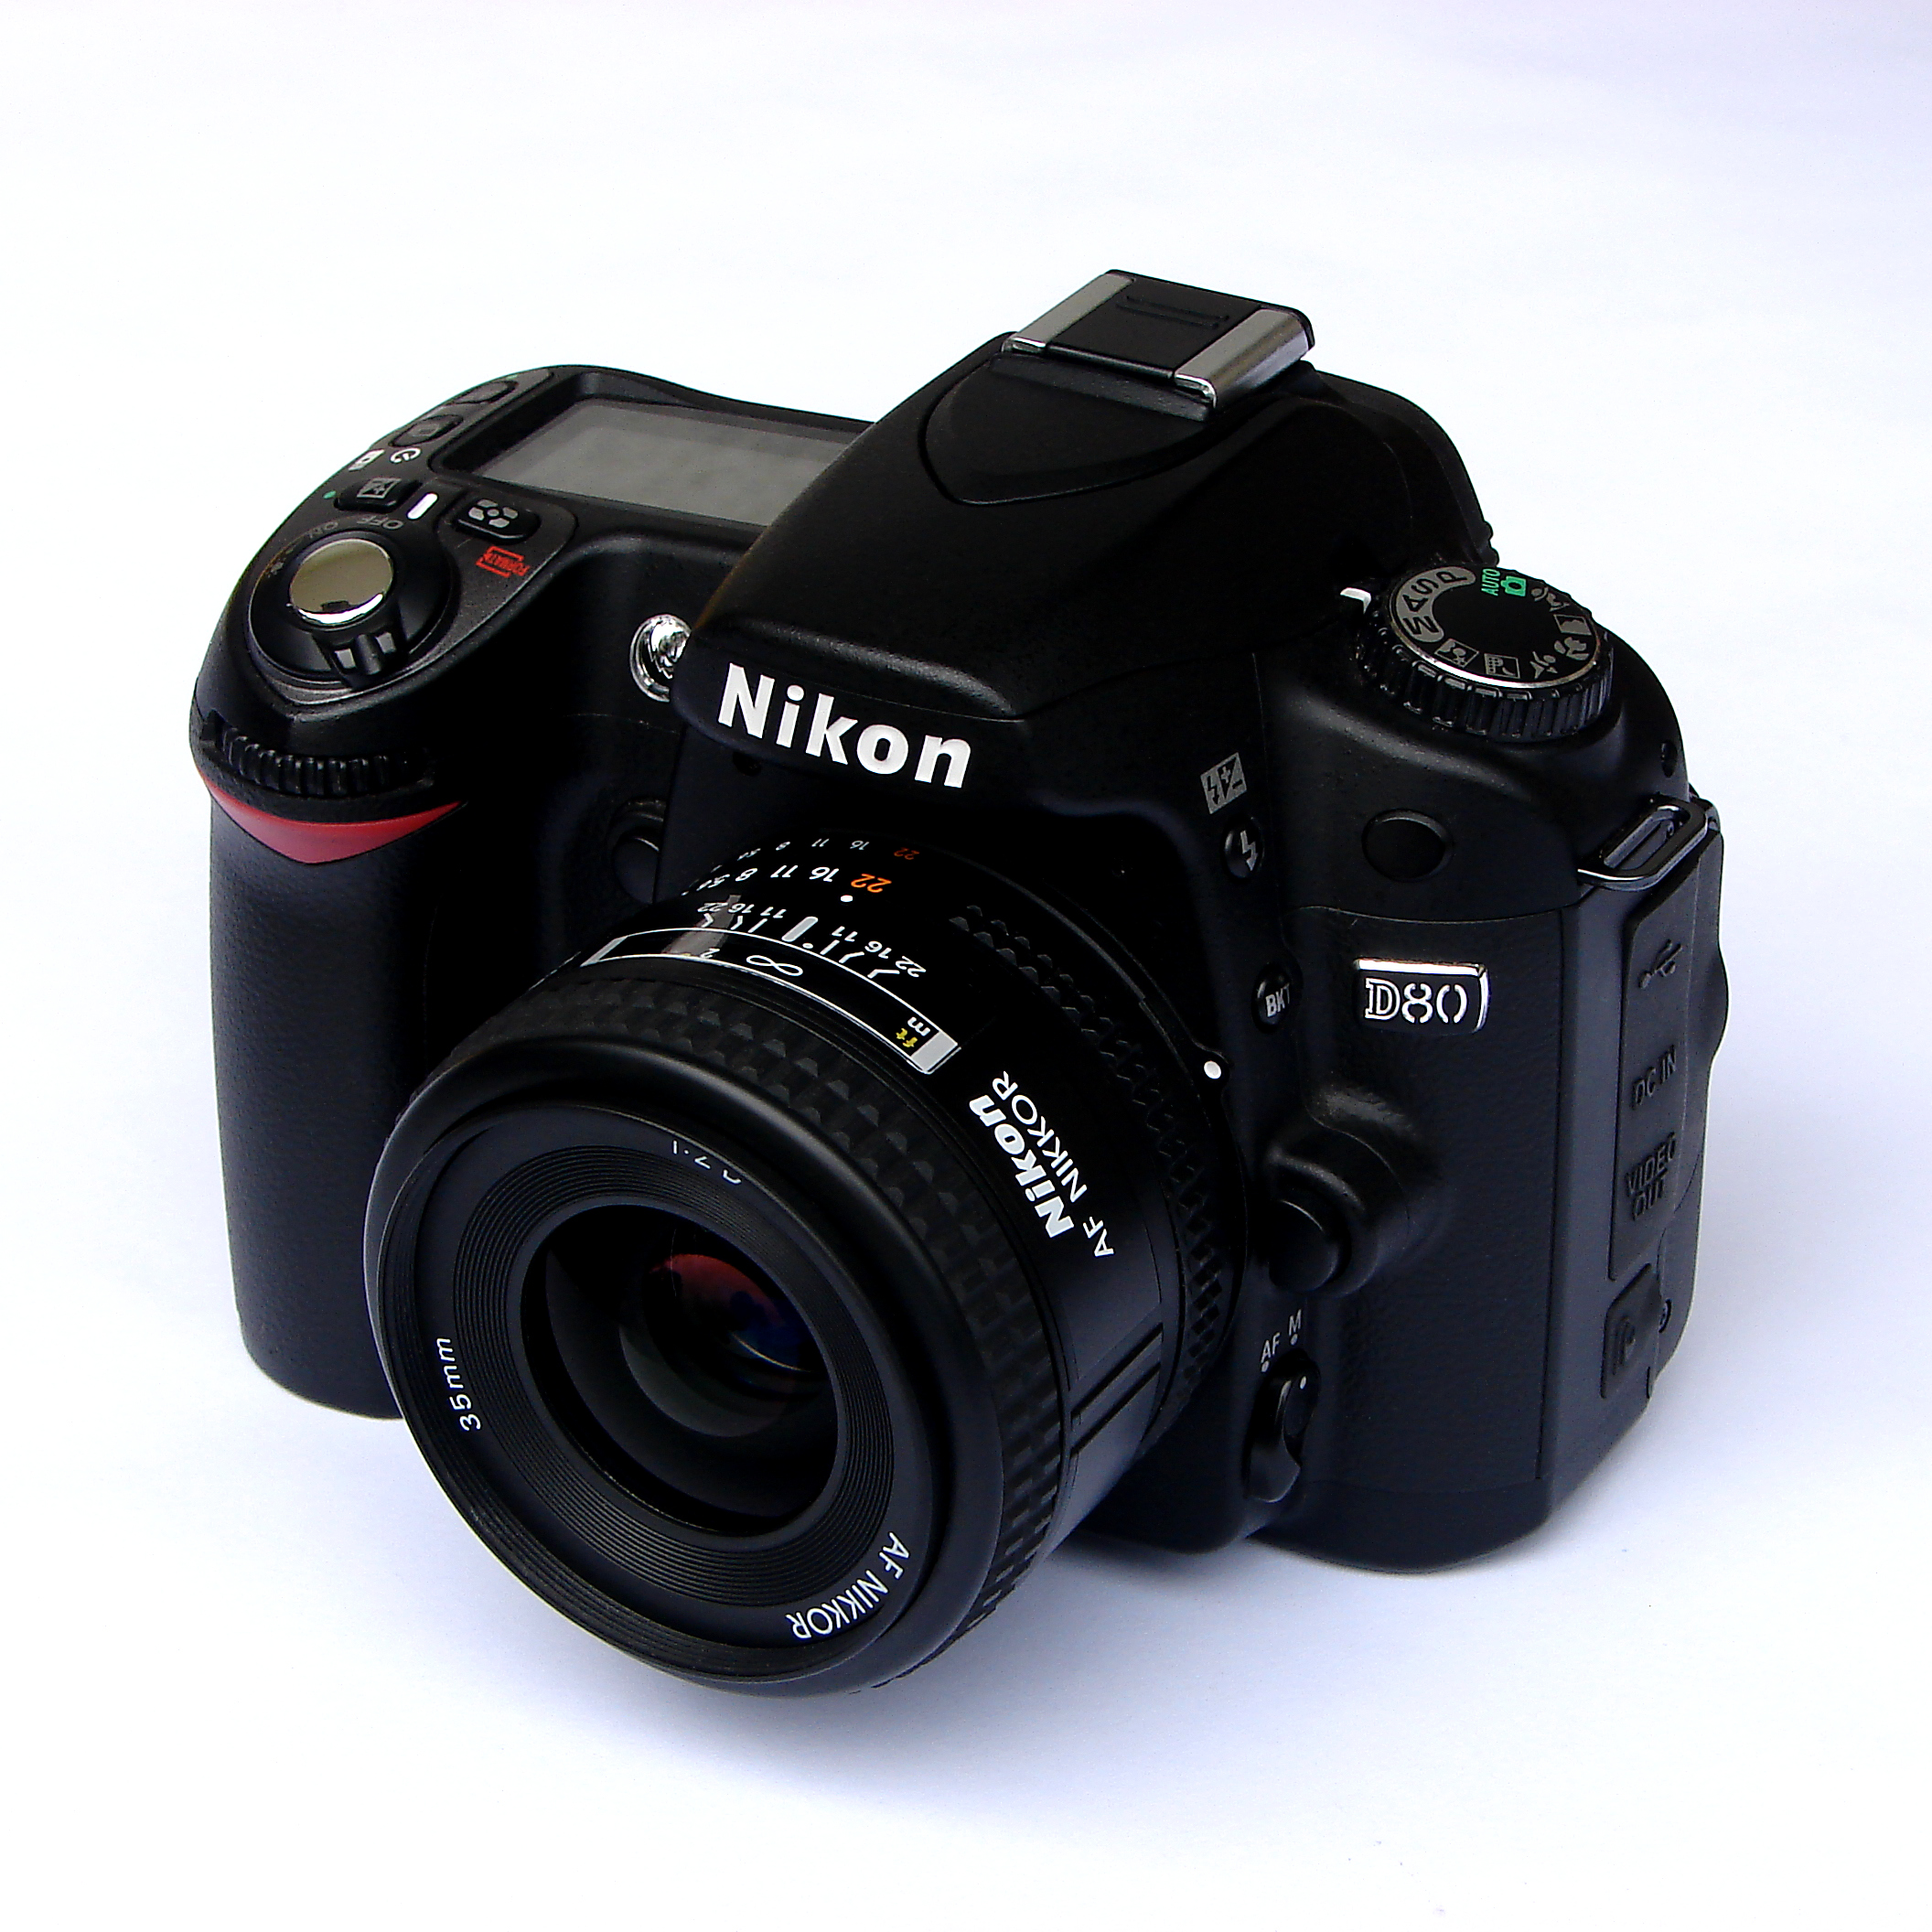 File:Nikon d80 with 35mm f2.0 front.jpg - Wikimedia Commons